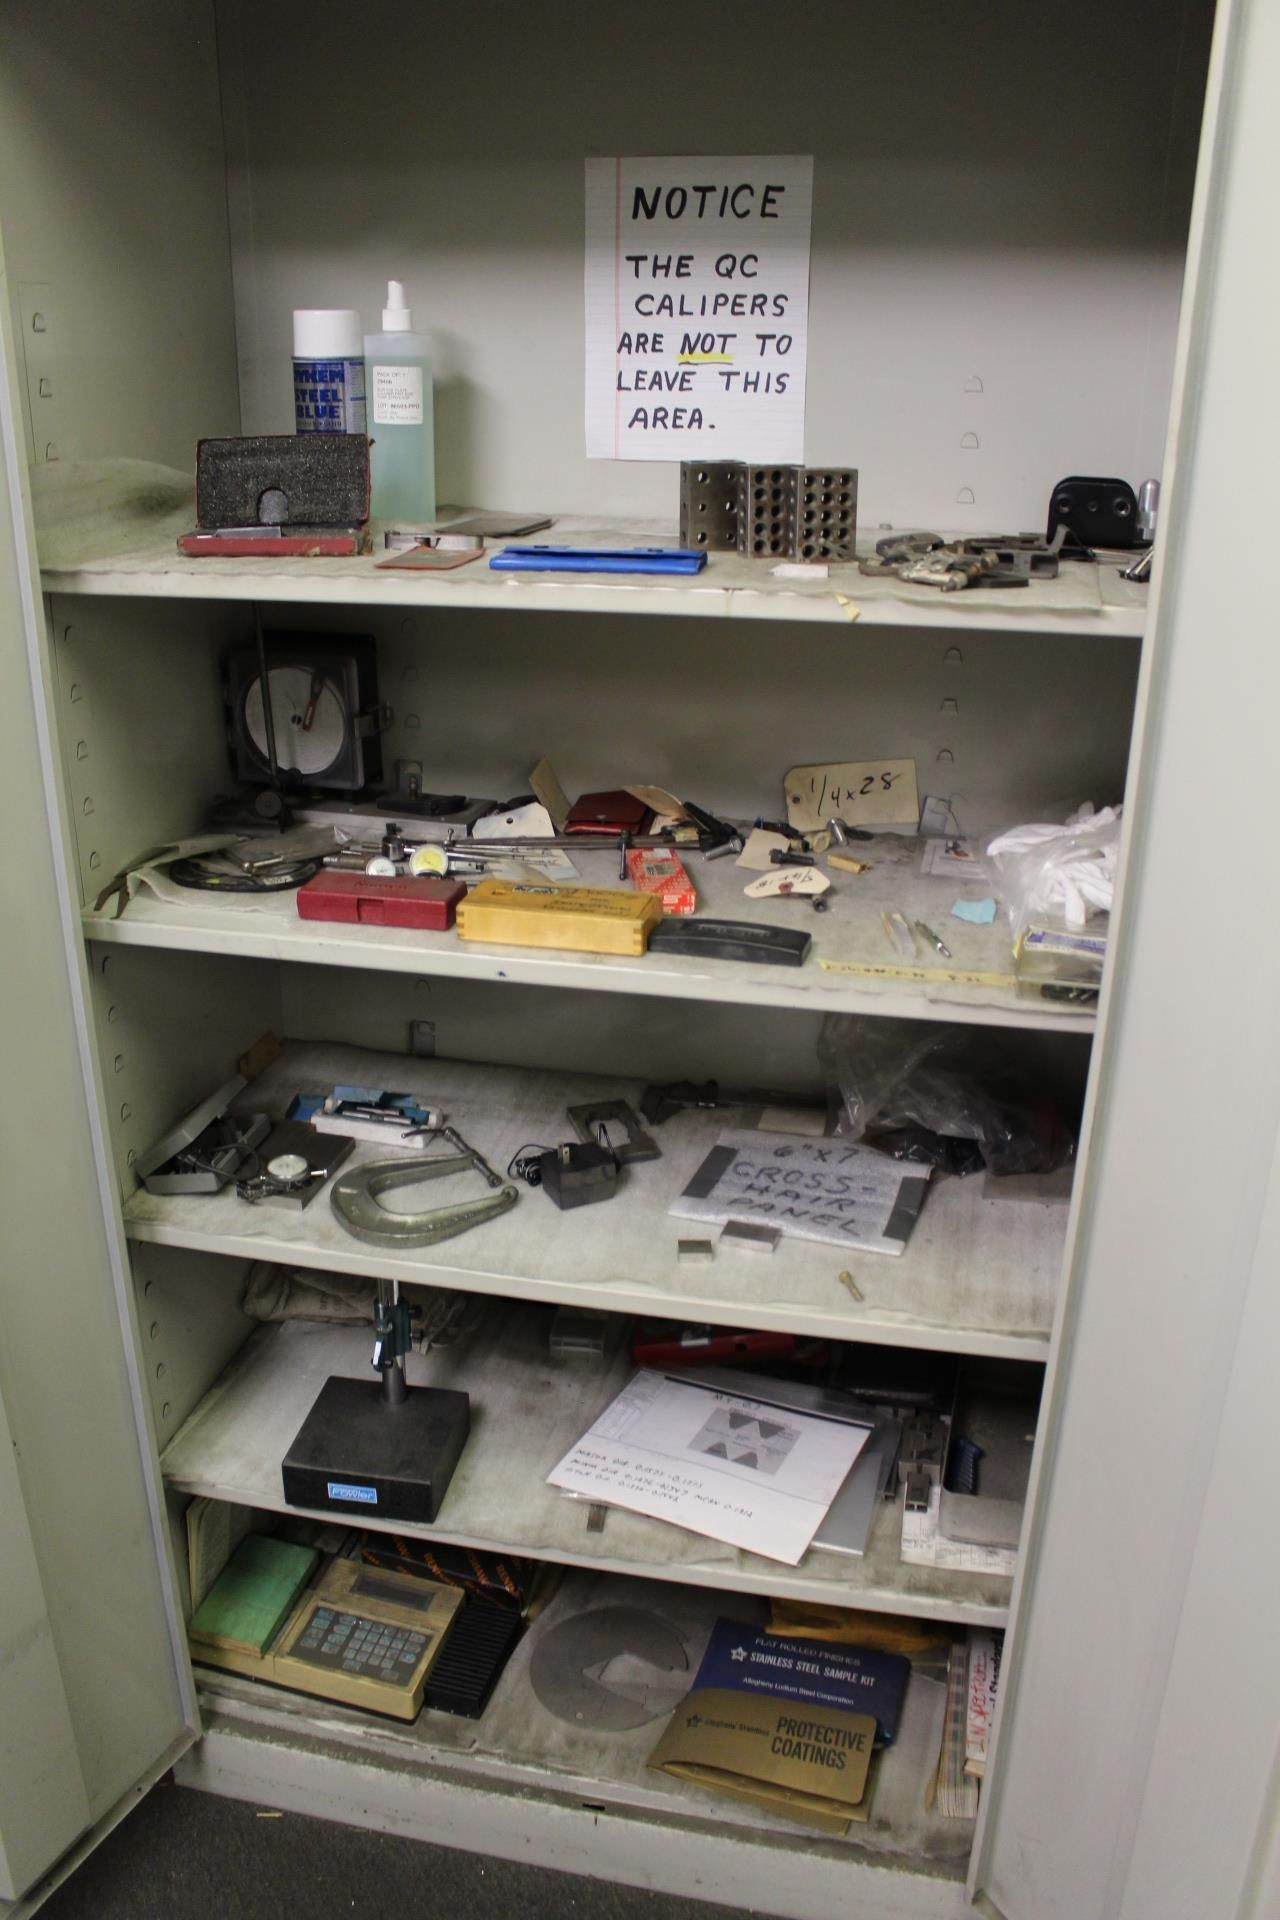 Lot 21 - LOT - 2-DOOR STORAGE CABINET, W/ CONTENTS OF MISC INSPECTION ITEMS